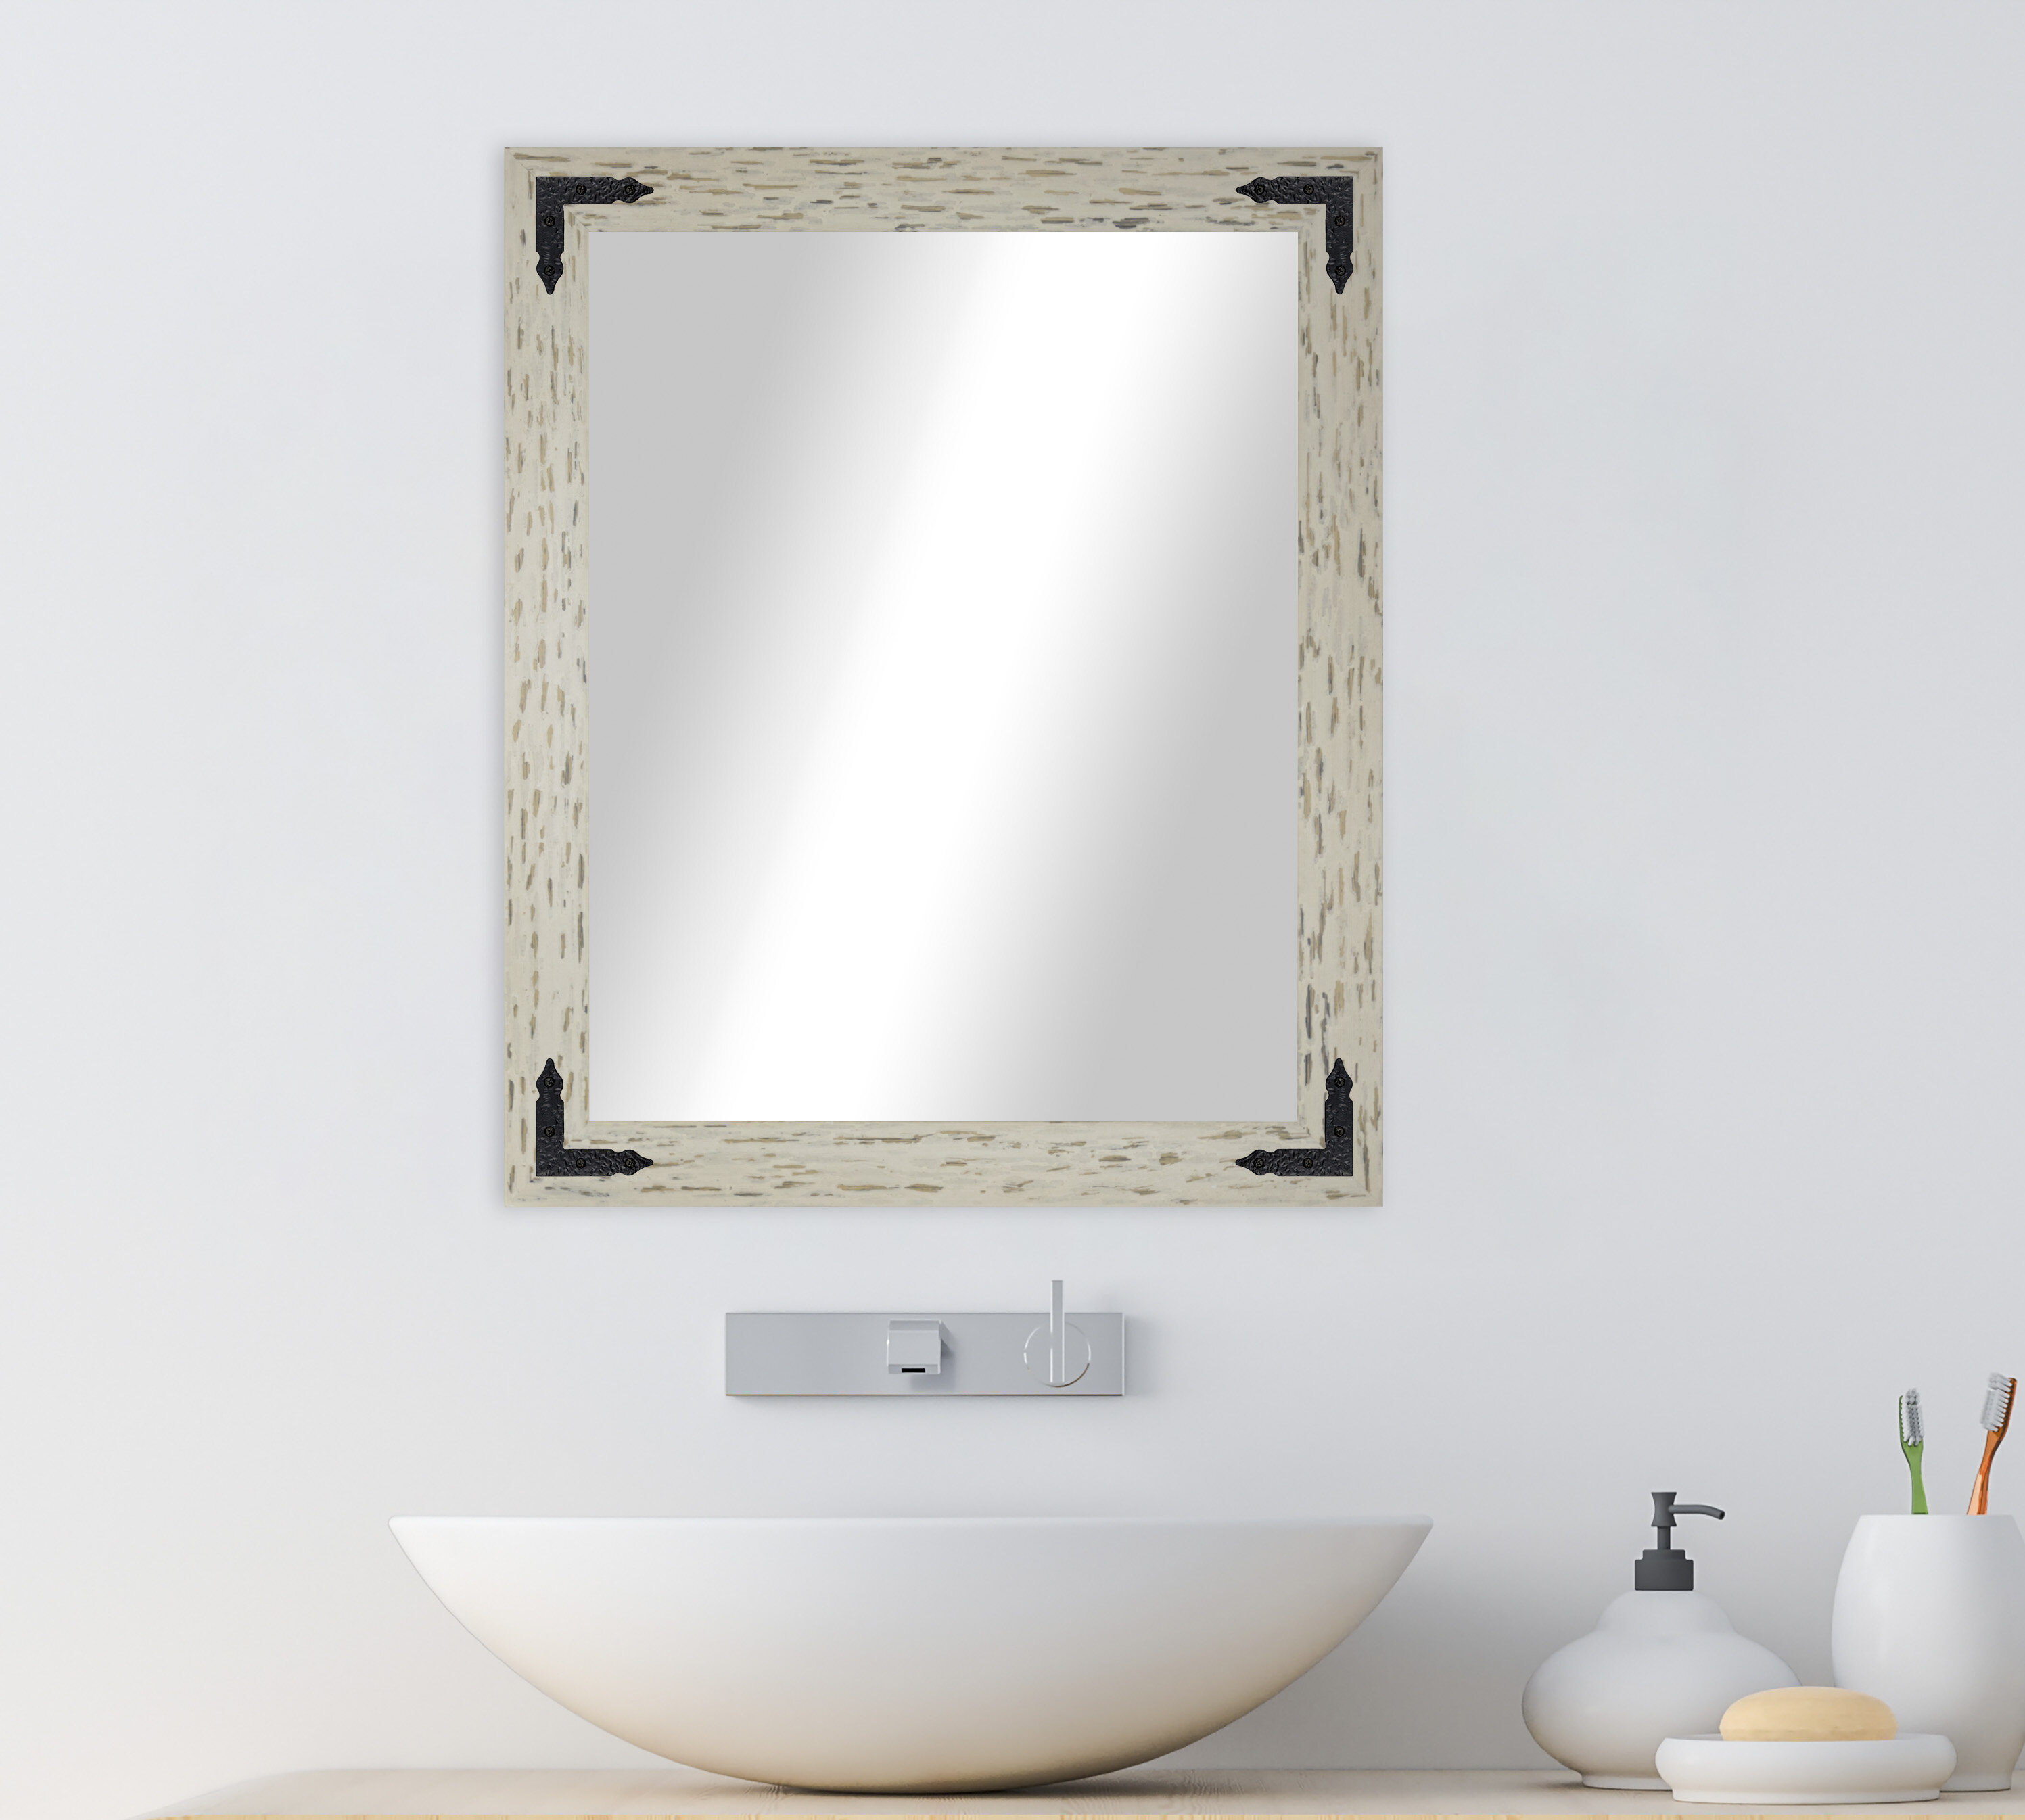 Bathroom Vanity Gracie Oaks Mirrors You Ll Love In 2021 Wayfair